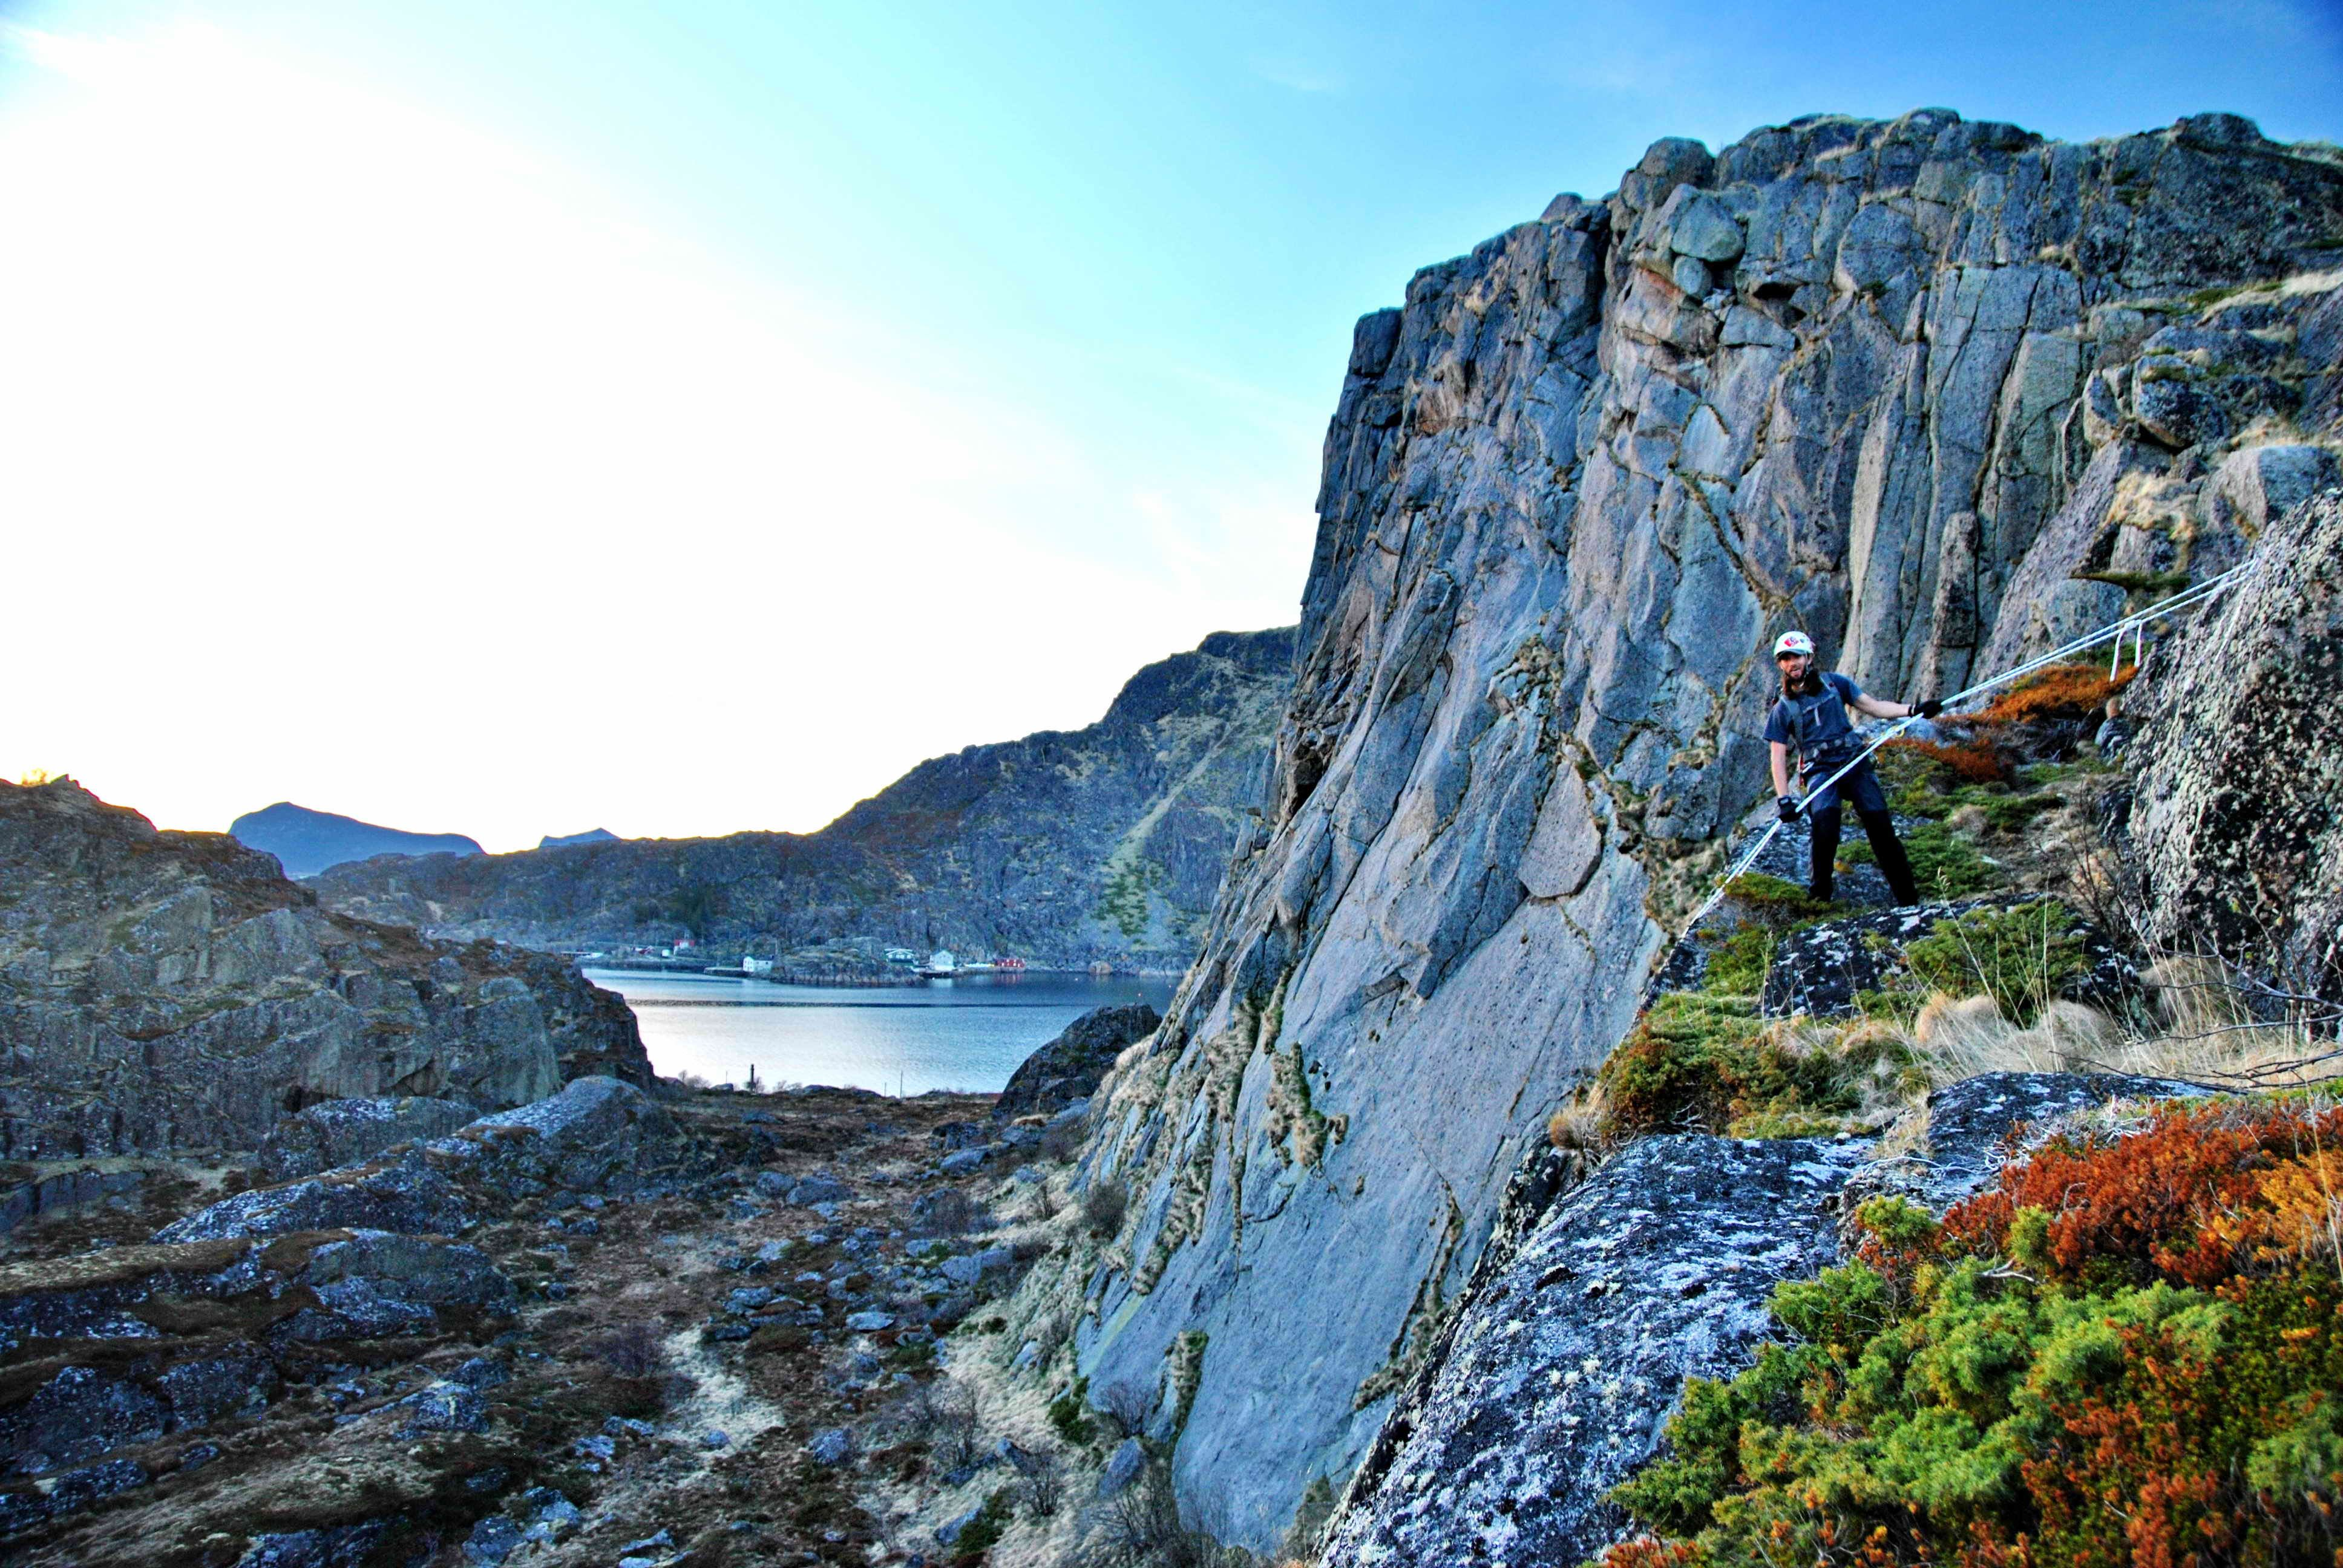 Full Day Trekking with Rappel - Northern Explorer